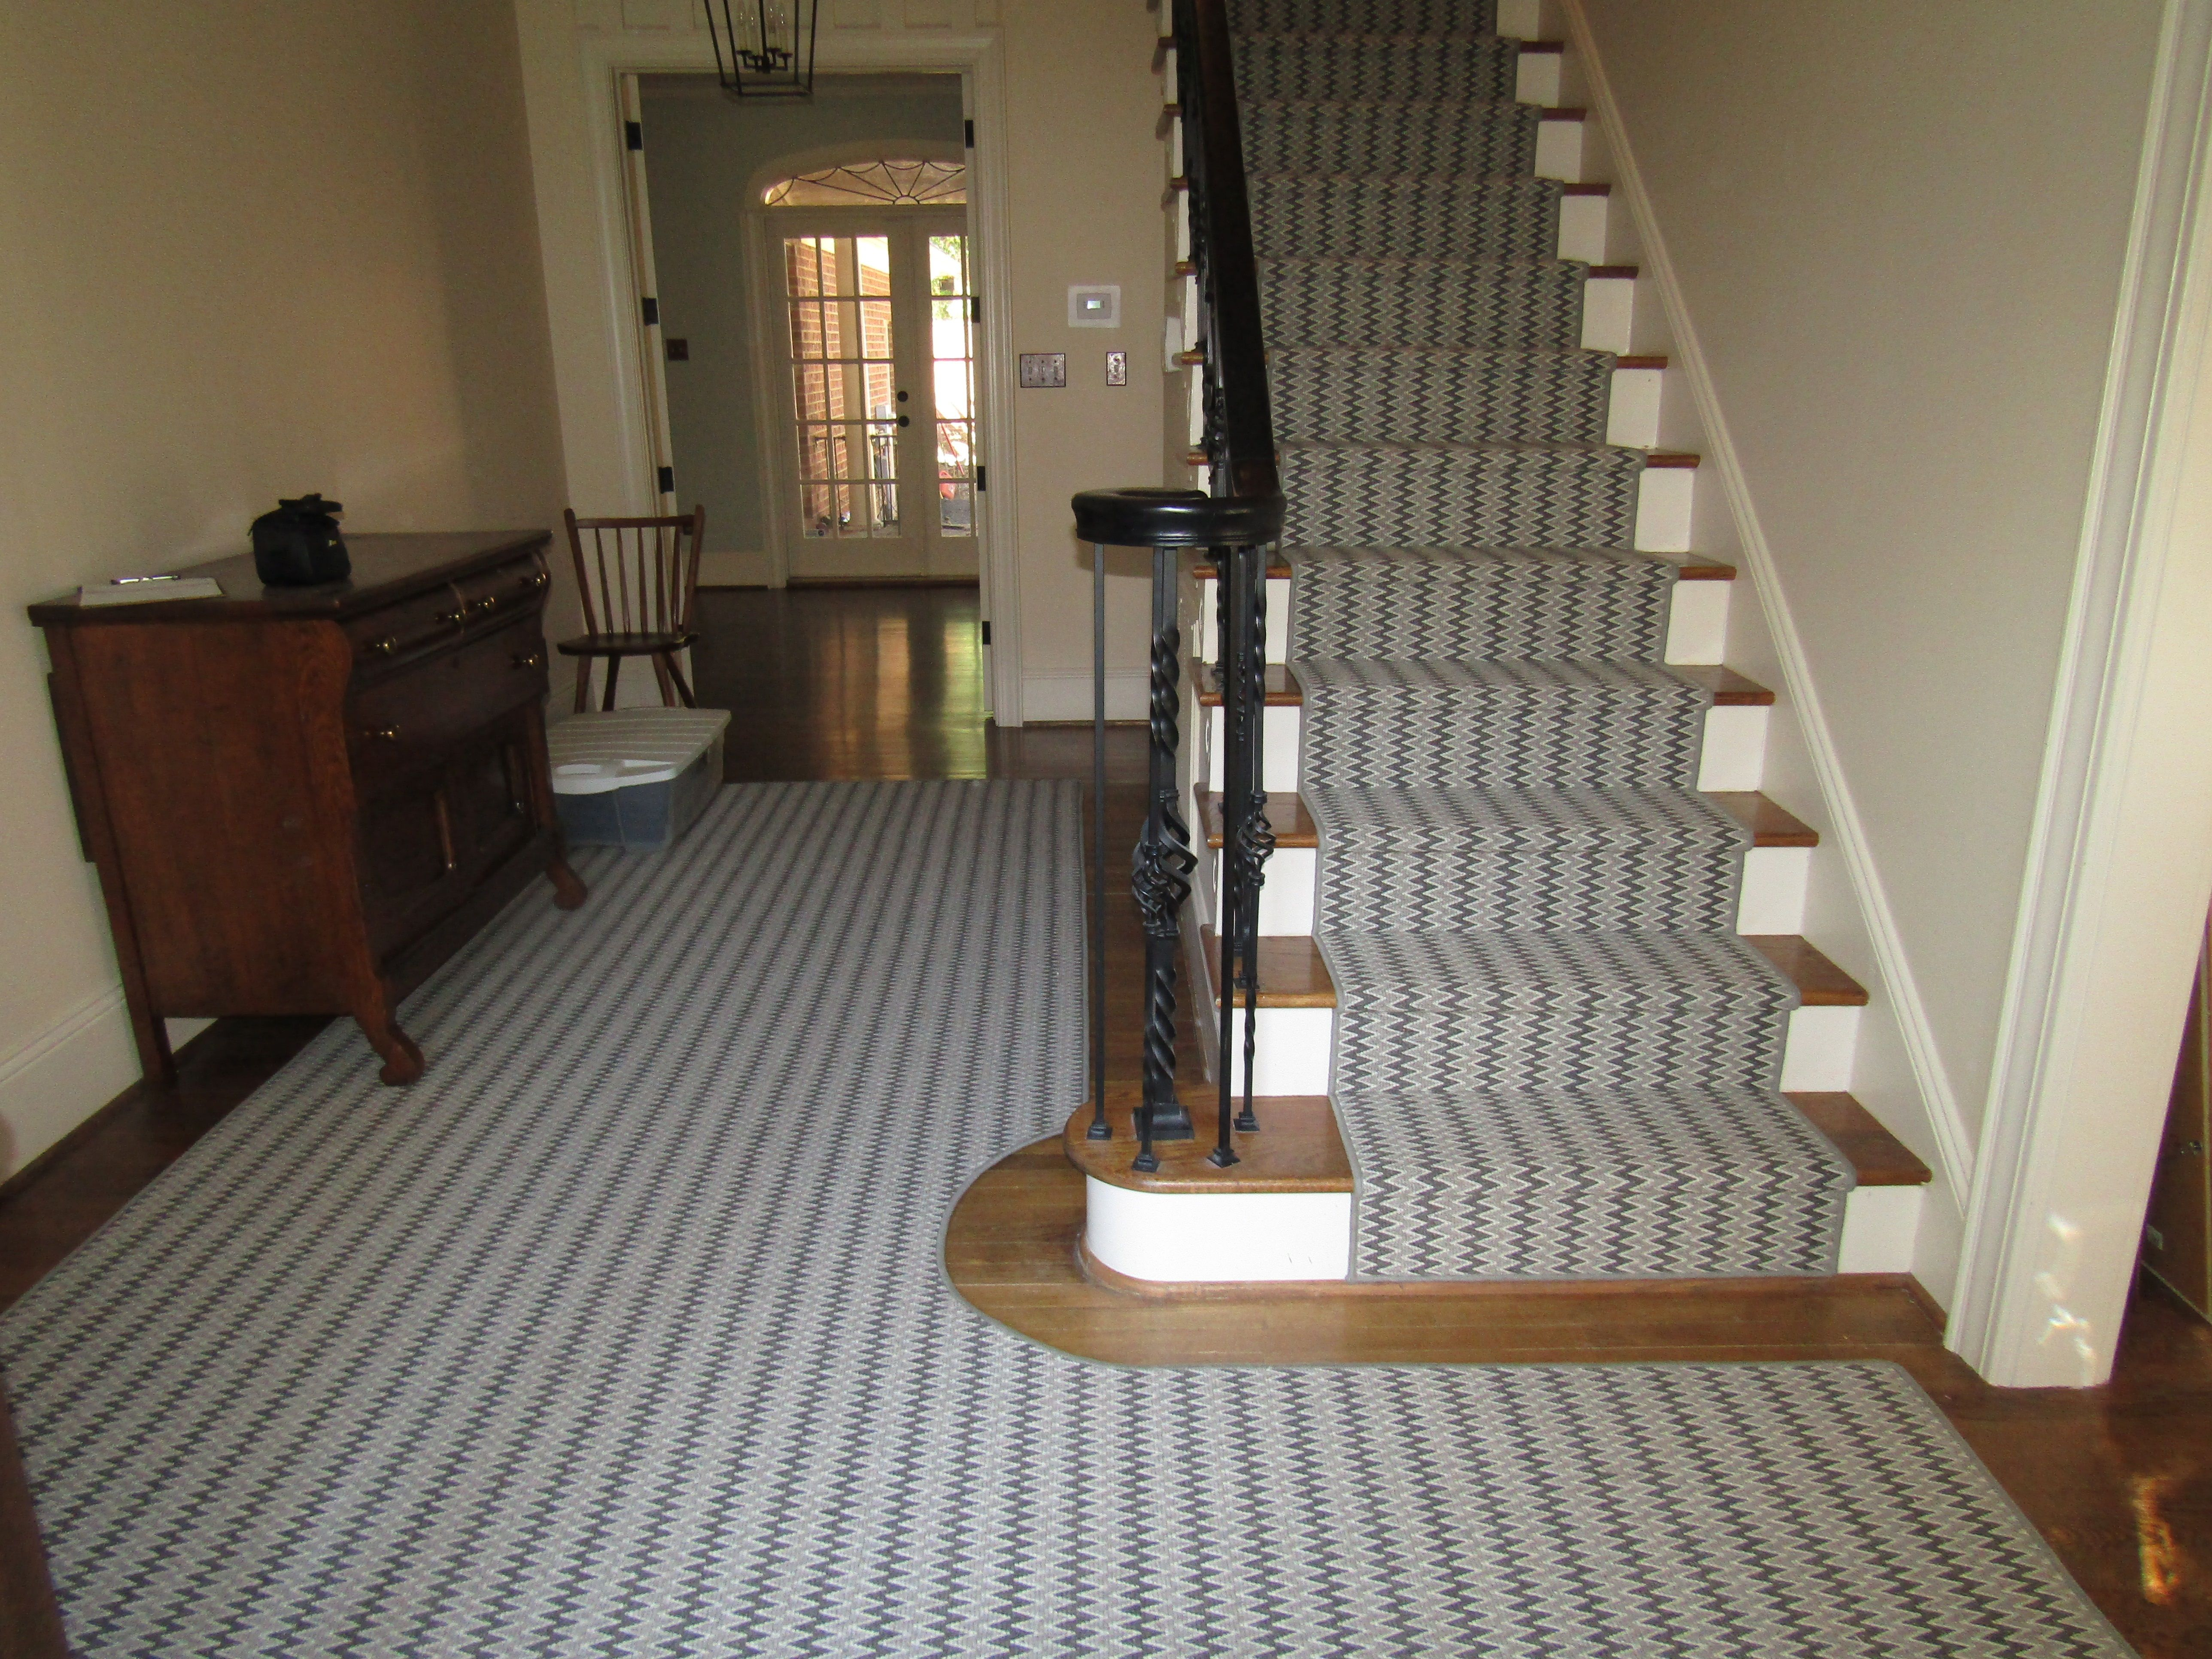 Pin On Stair Runners   Rug For Bottom Of Stairs   Stairs Floormat   Stair Runners   Flooring   Landing Mat   Rectangle